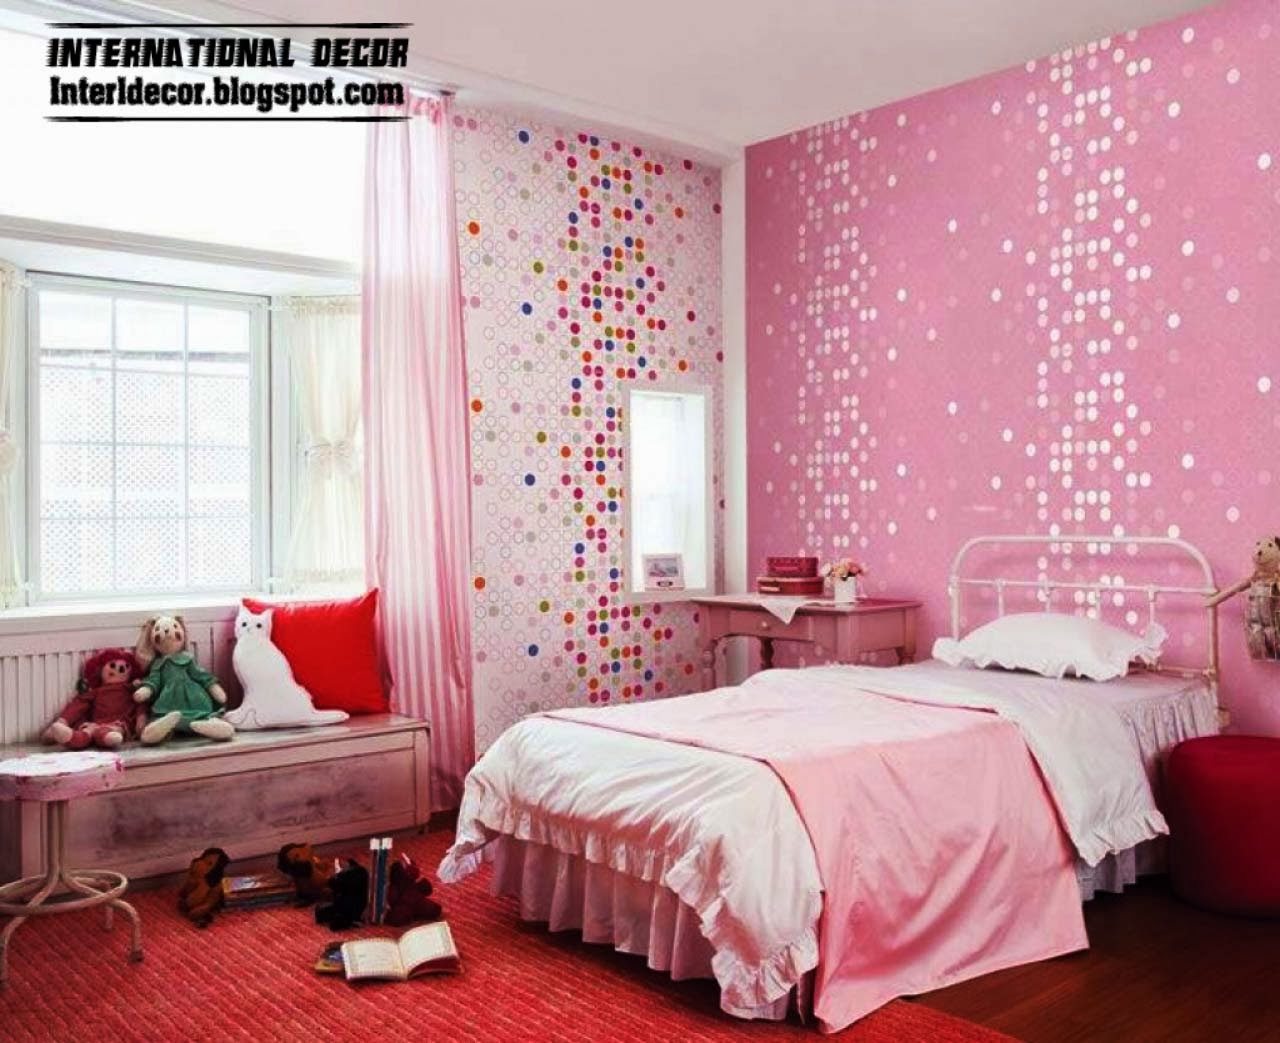 Interior Design 2014: 15 Pink Girl\'s bedroom 2014 : Inspire ...